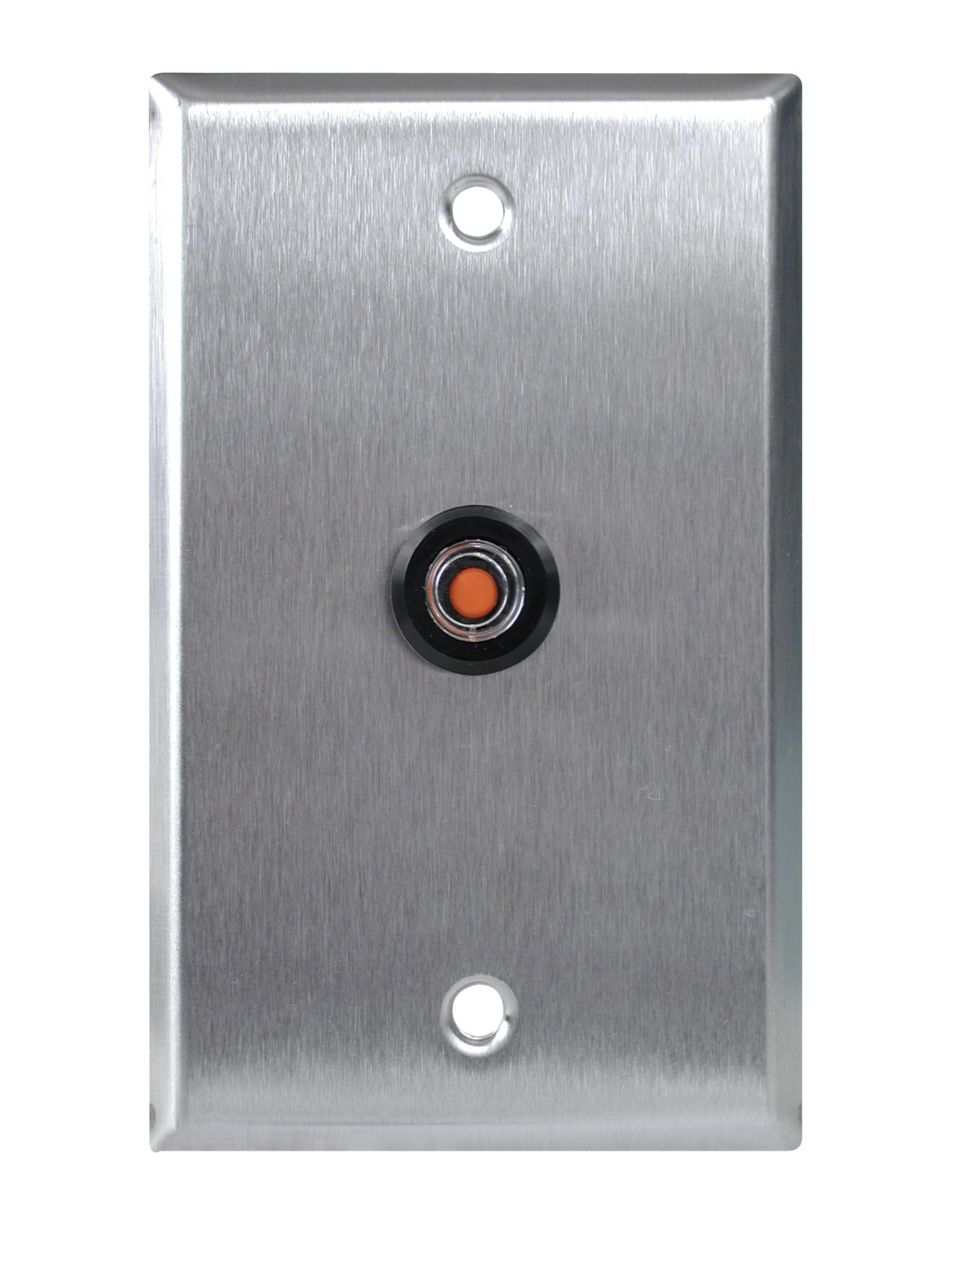 EXB-1 Egress Button